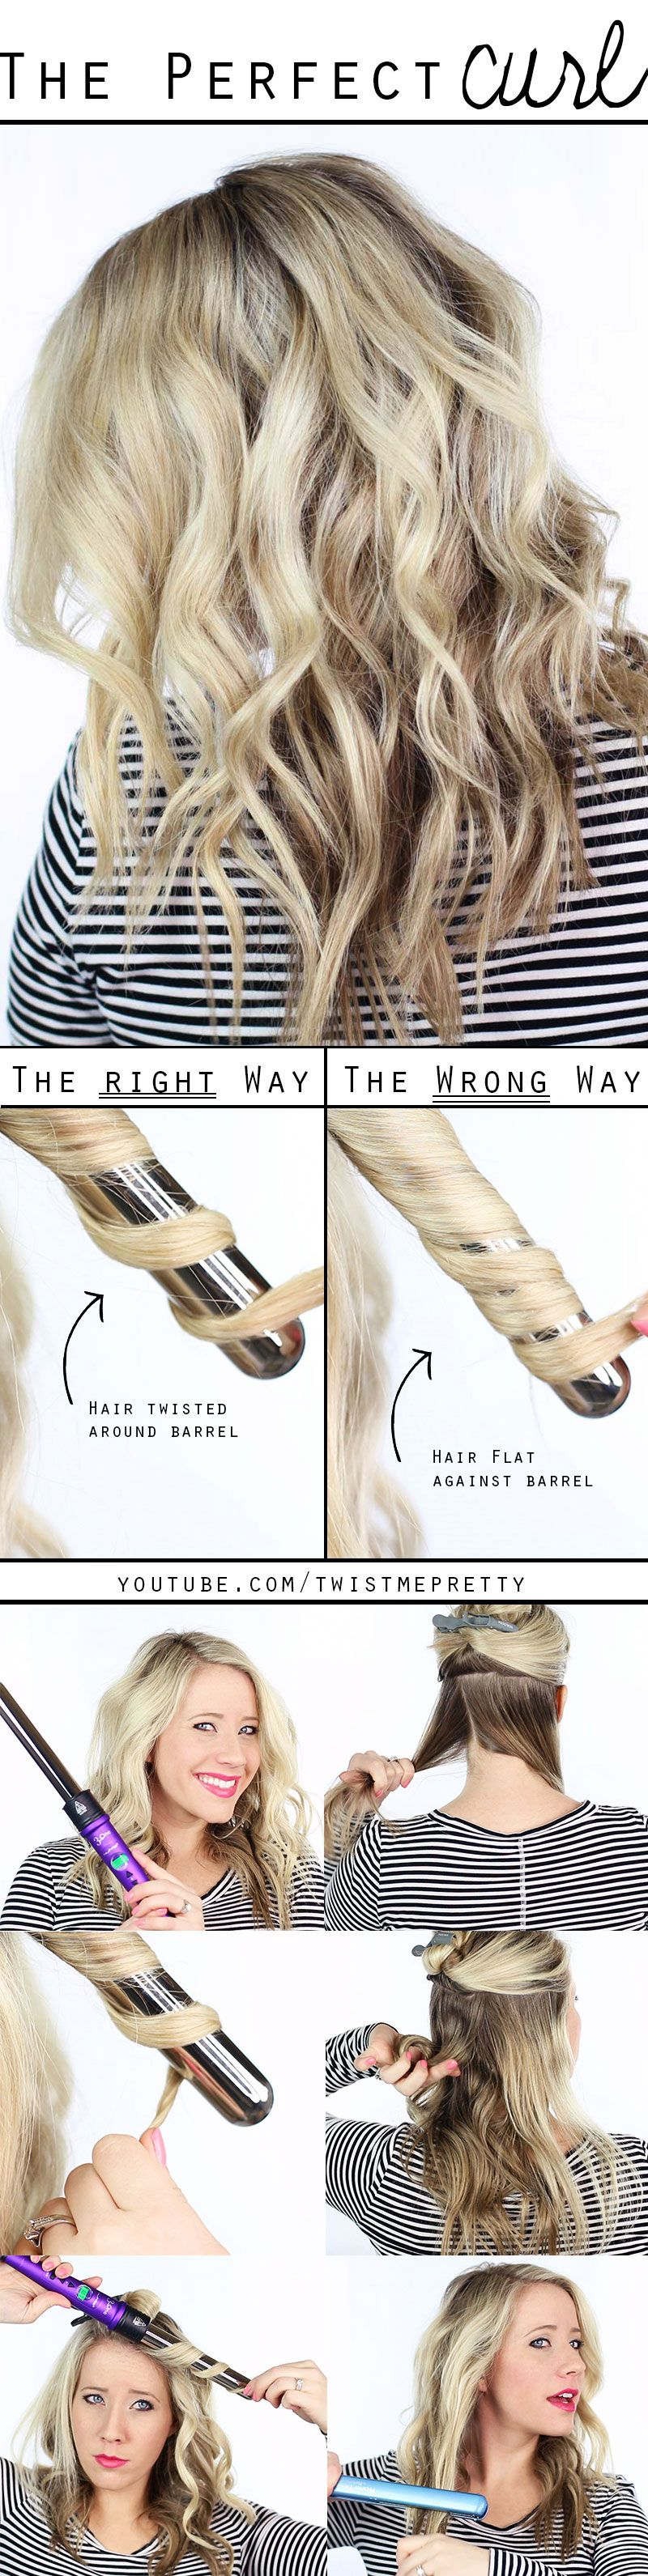 5 Curling Wand Tutorials Curling Hair With Wand Hair Styles Hair Beauty